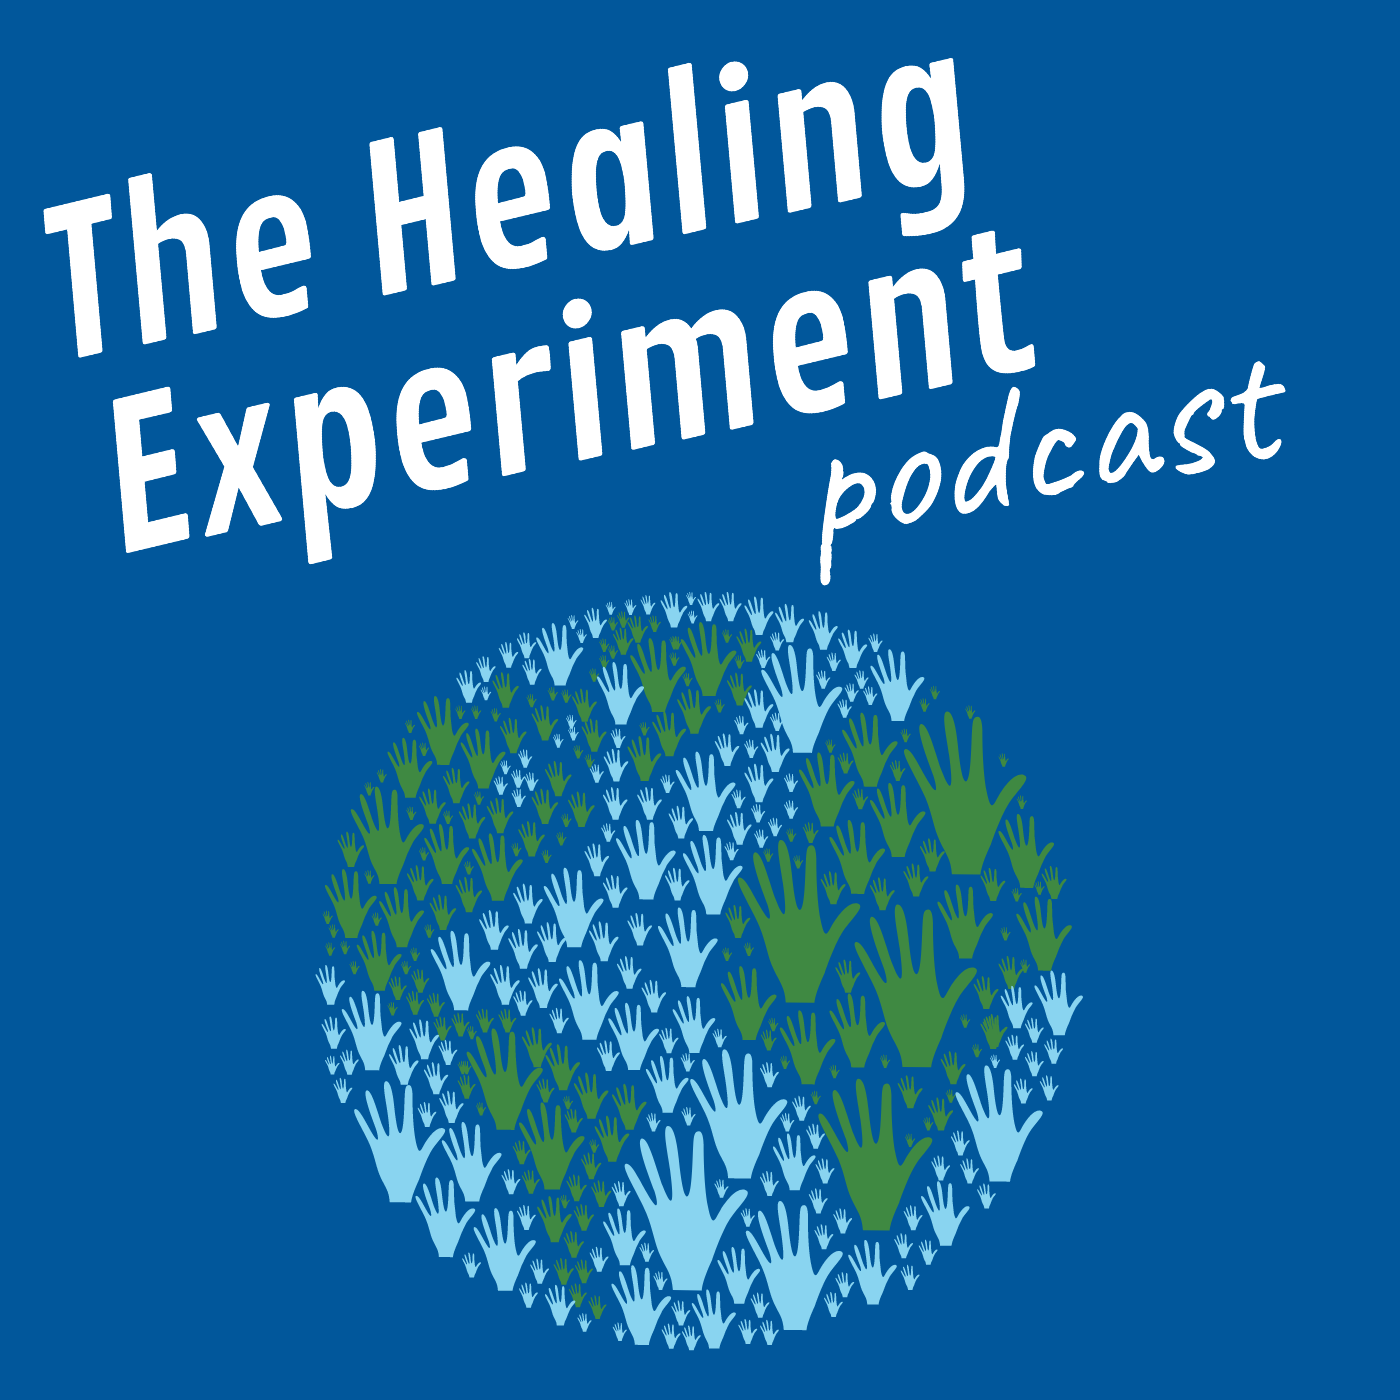 The Healing Experiment